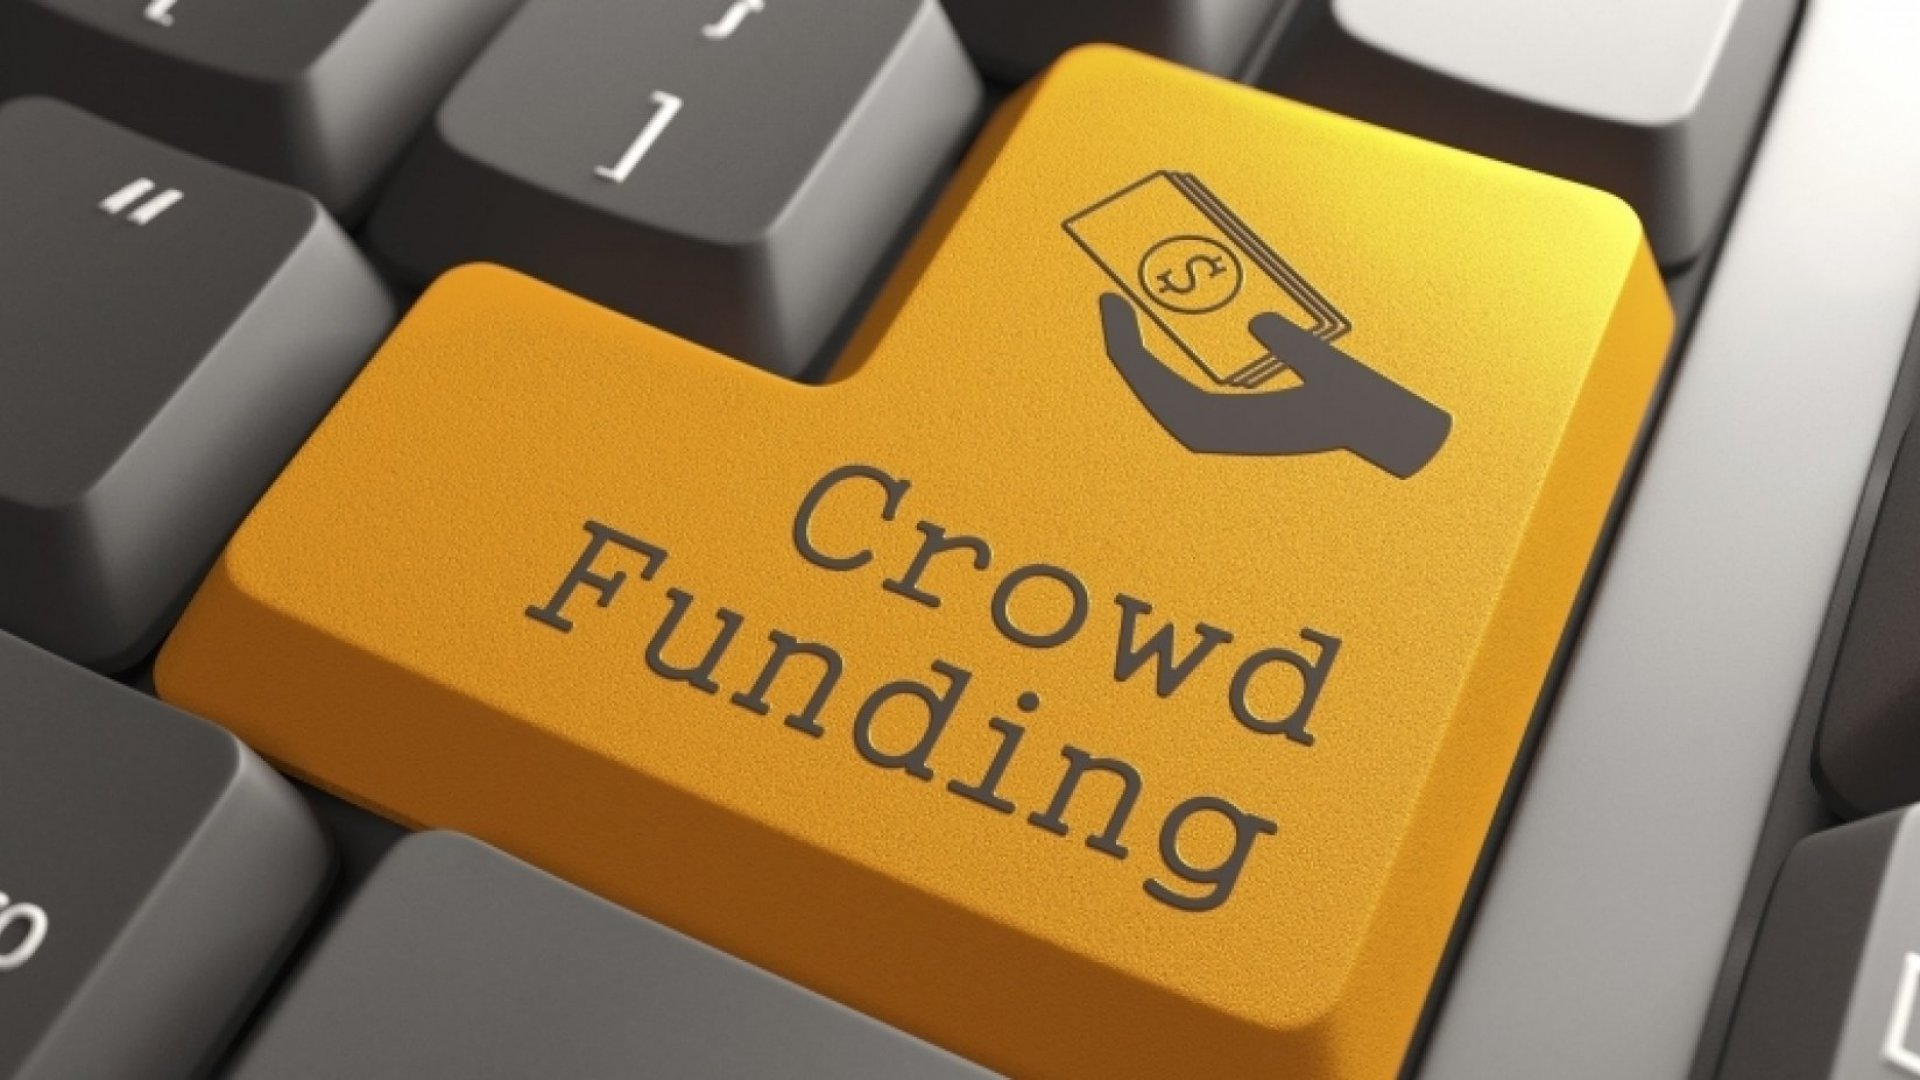 Why You Should Choose Crowdfunding Instead of Venture Capital